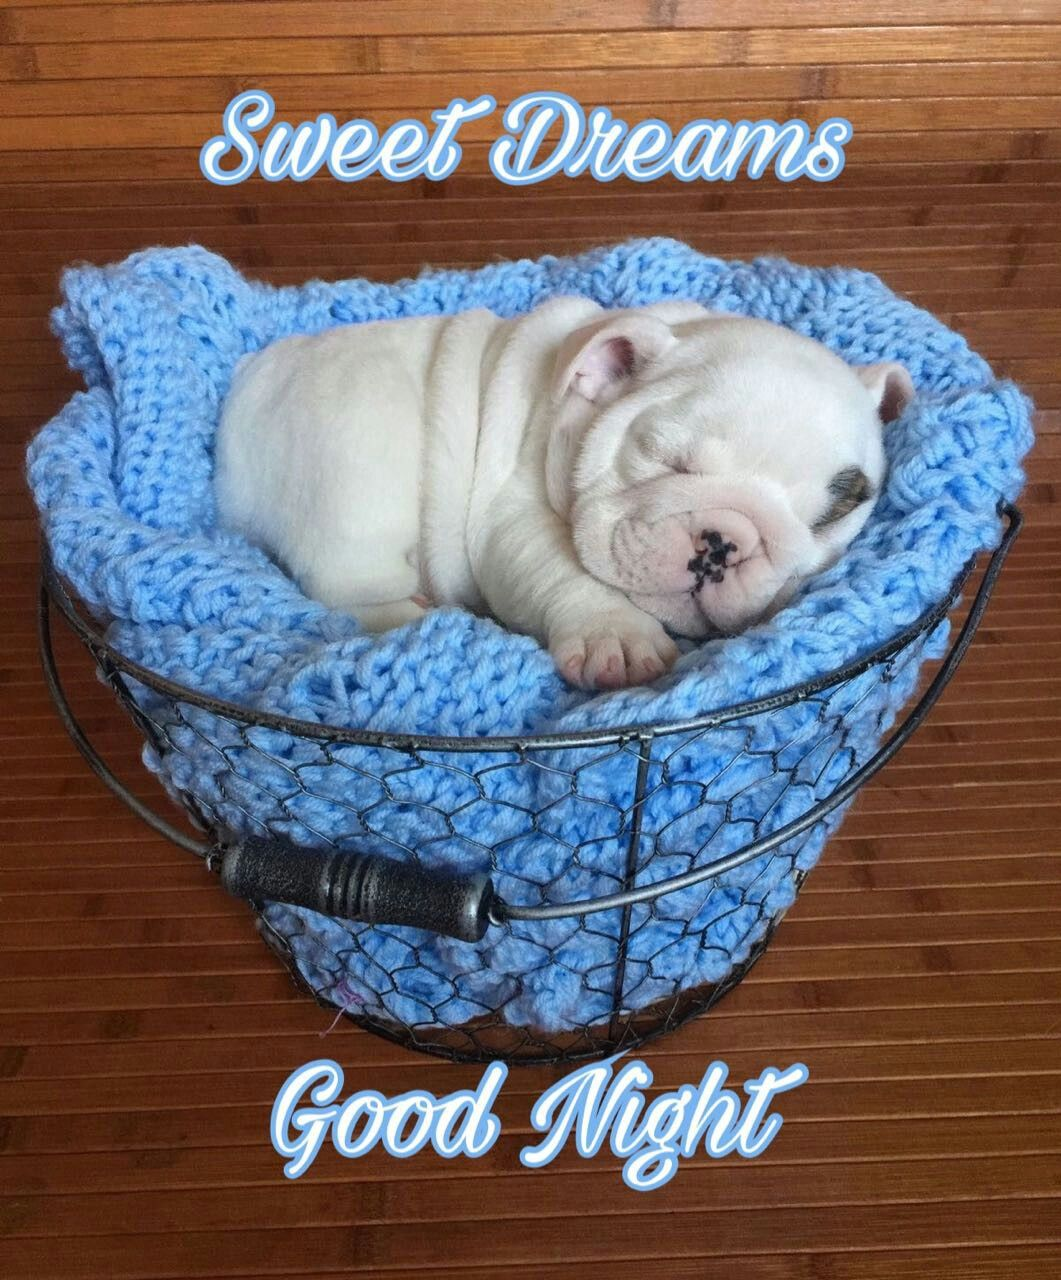 Good Night Sweet Dreams My Friend And Rest Well May God Bless You Cute Animals Funny Animal Videos English Bulldog Puppies